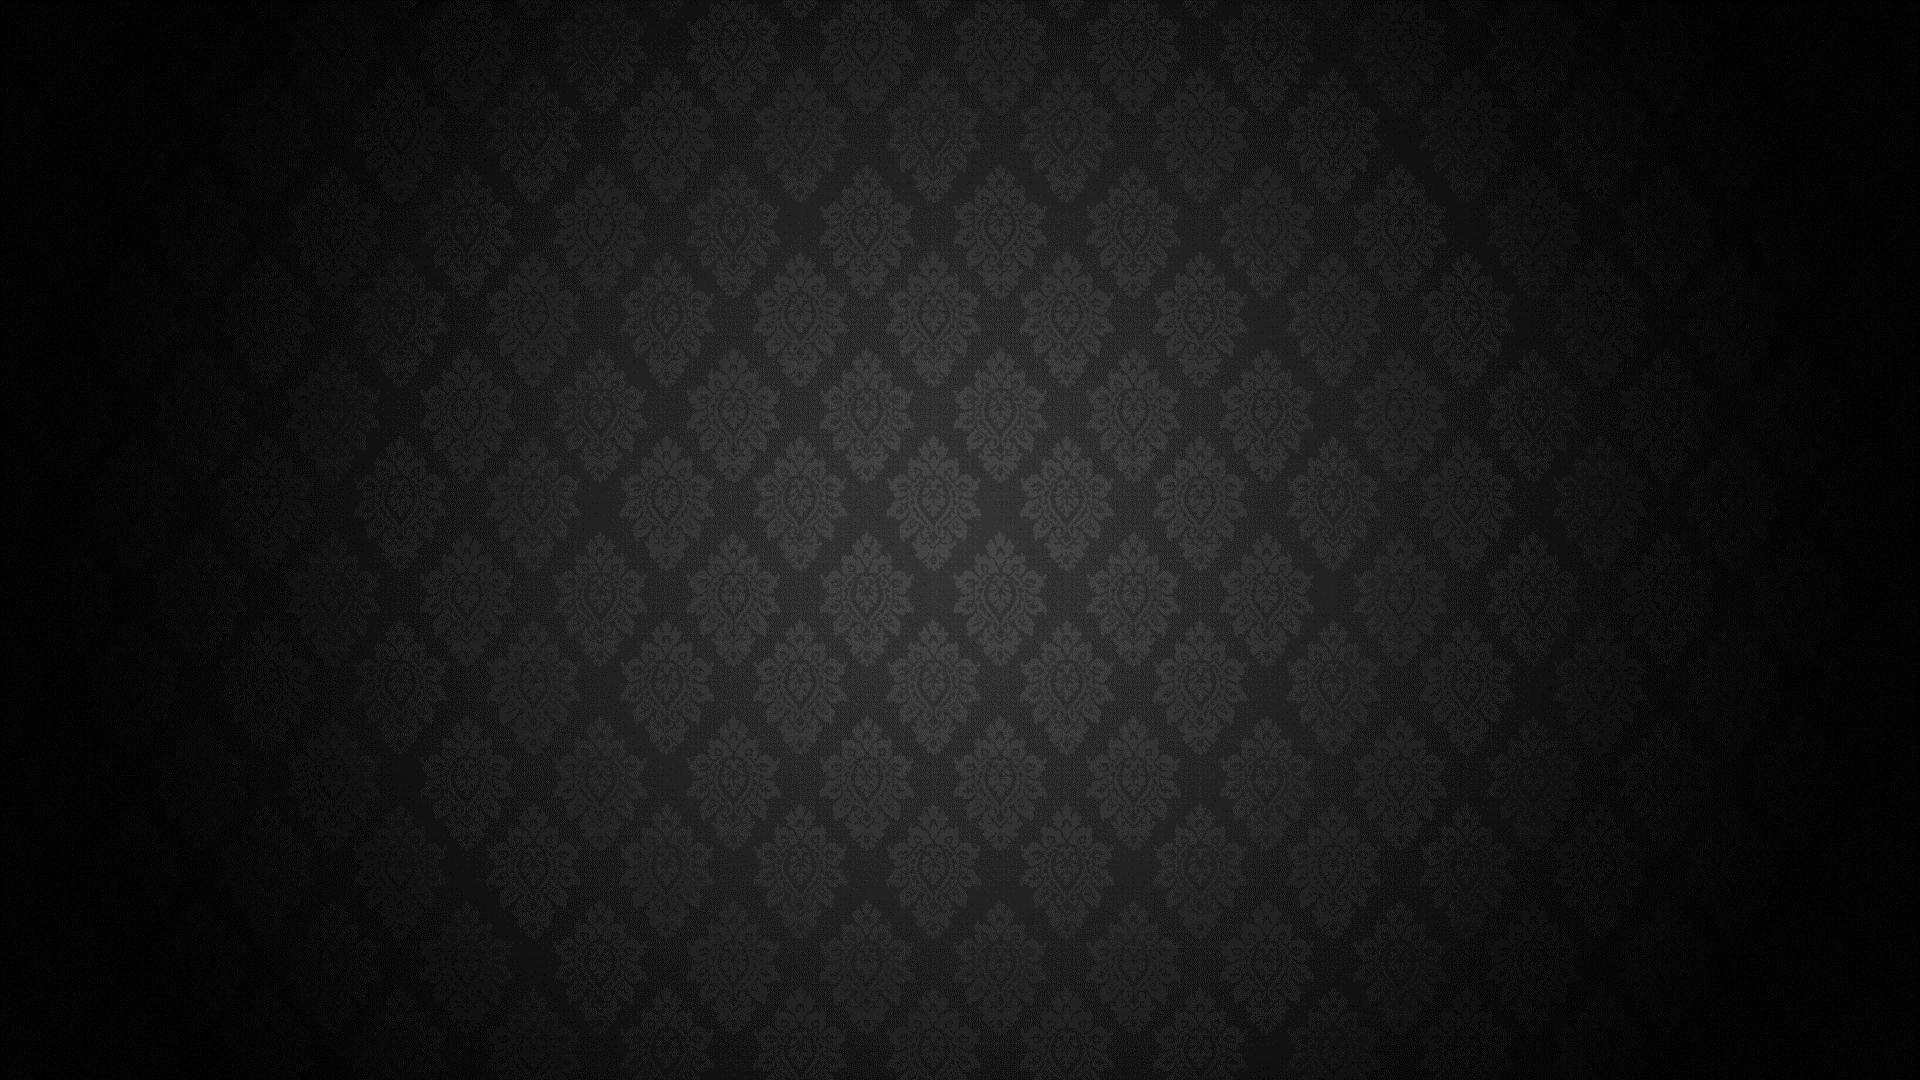 Dark Black Wallpaper Background 181.73 Kb